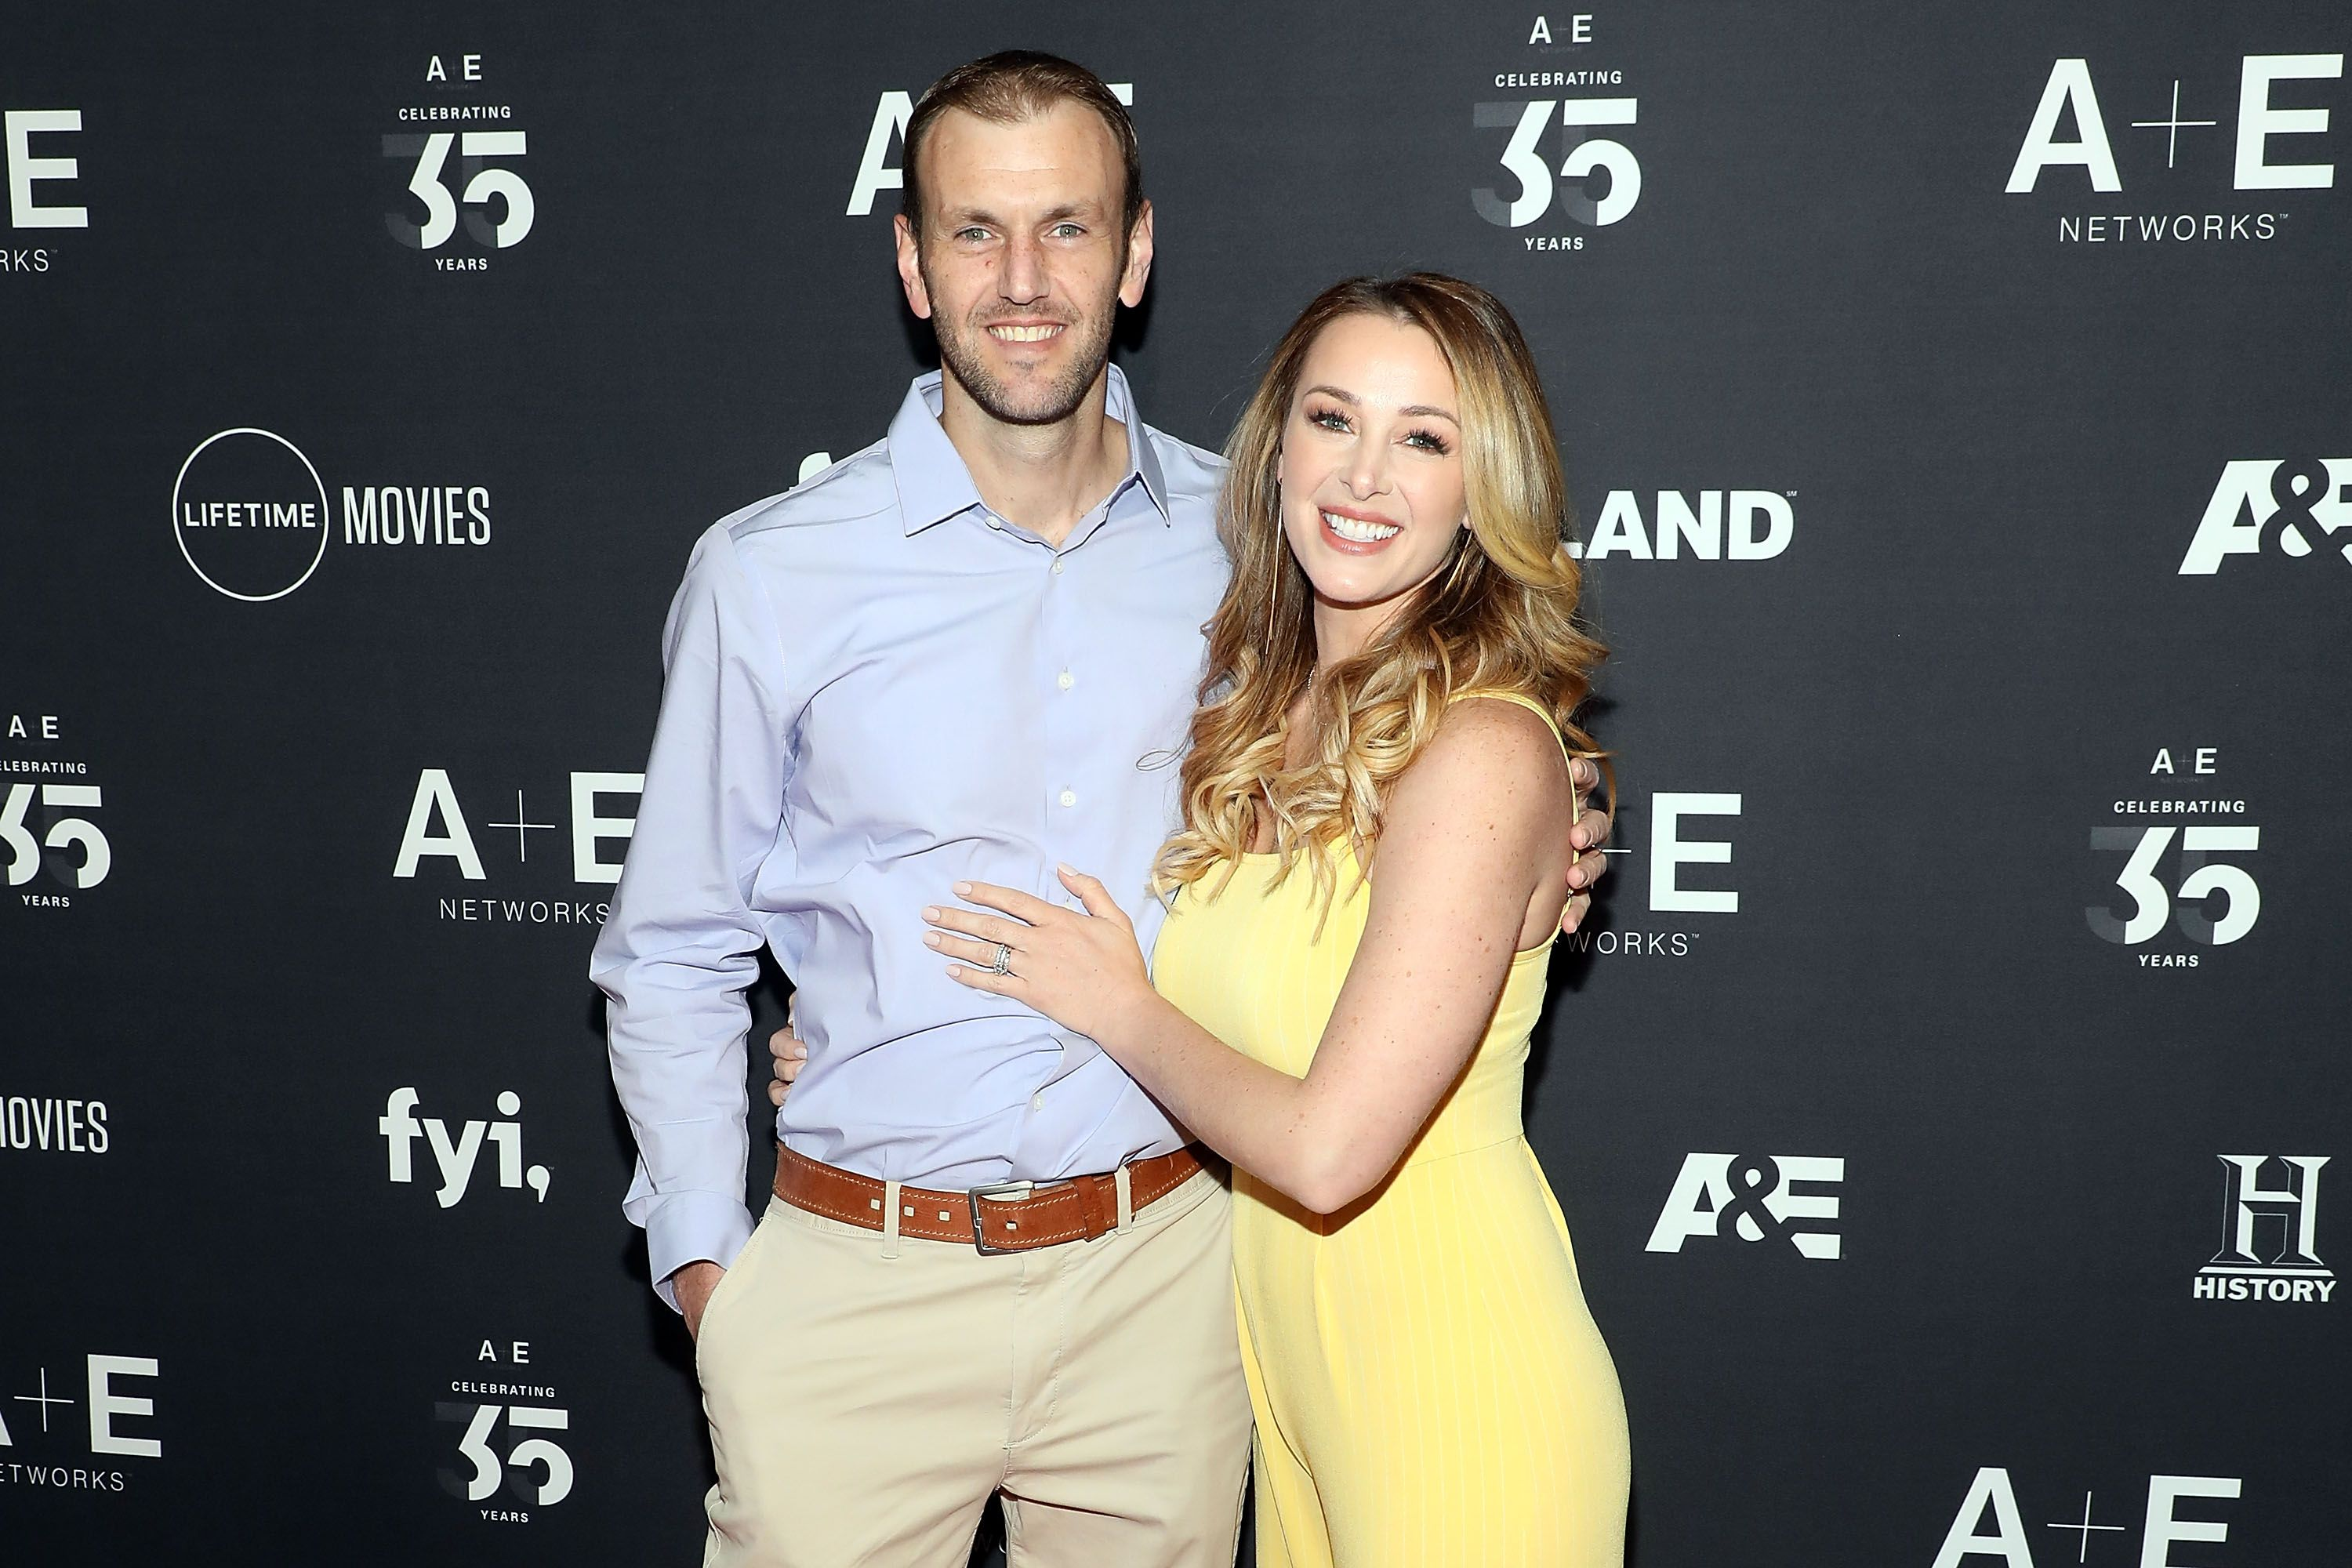 Doug Hehner and Jamie Otis at the 2019 A+E Upfront at Jazz in 2019 in New York | Source: Getty Images